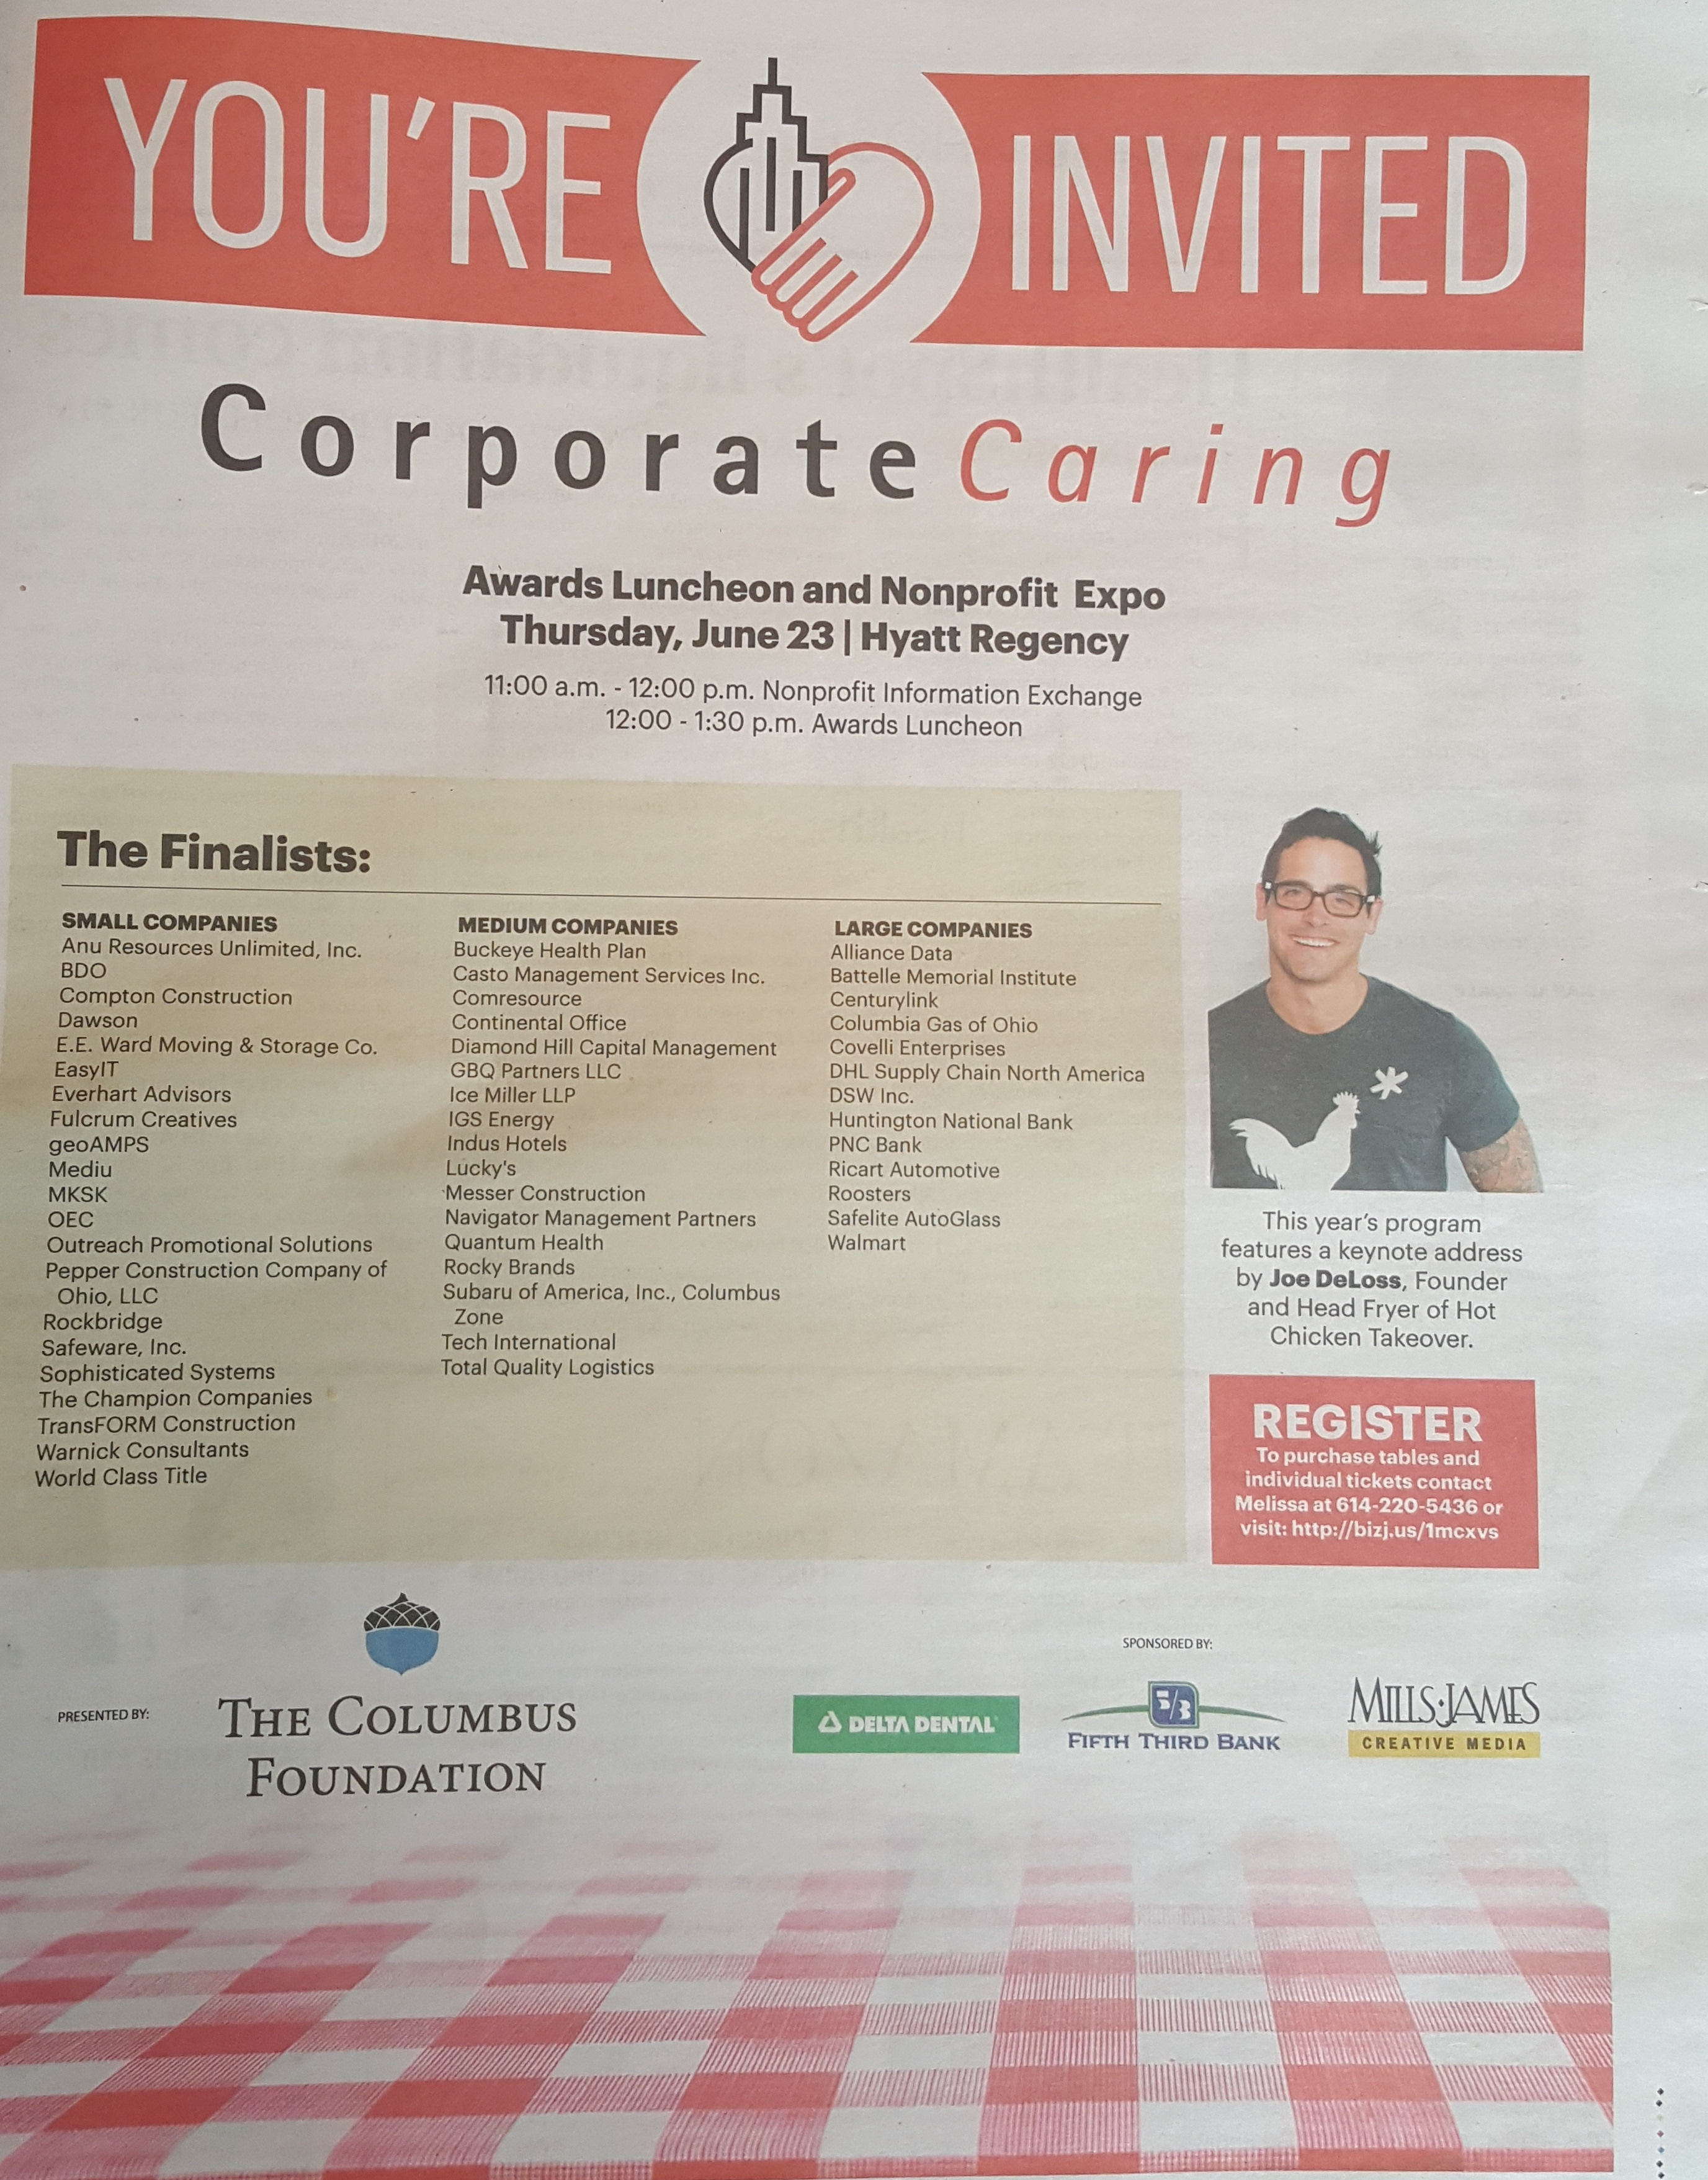 Countdown to Corporate Caring!